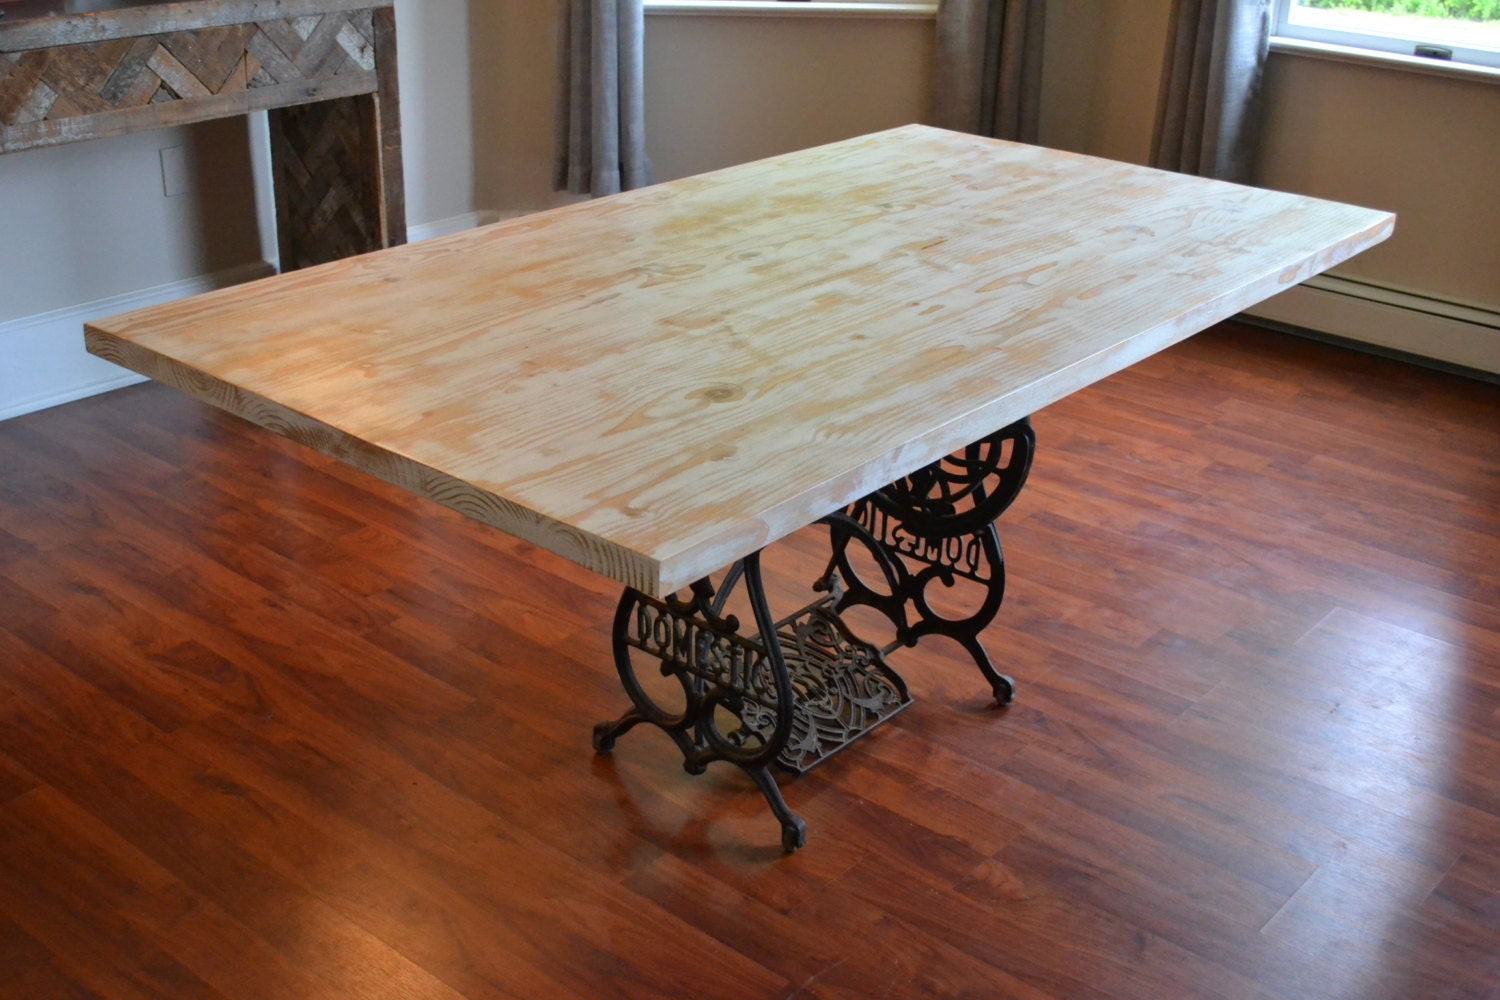 Design Sewing Machine Base Table kitchen table with antique sewing machine base reclaimed wood